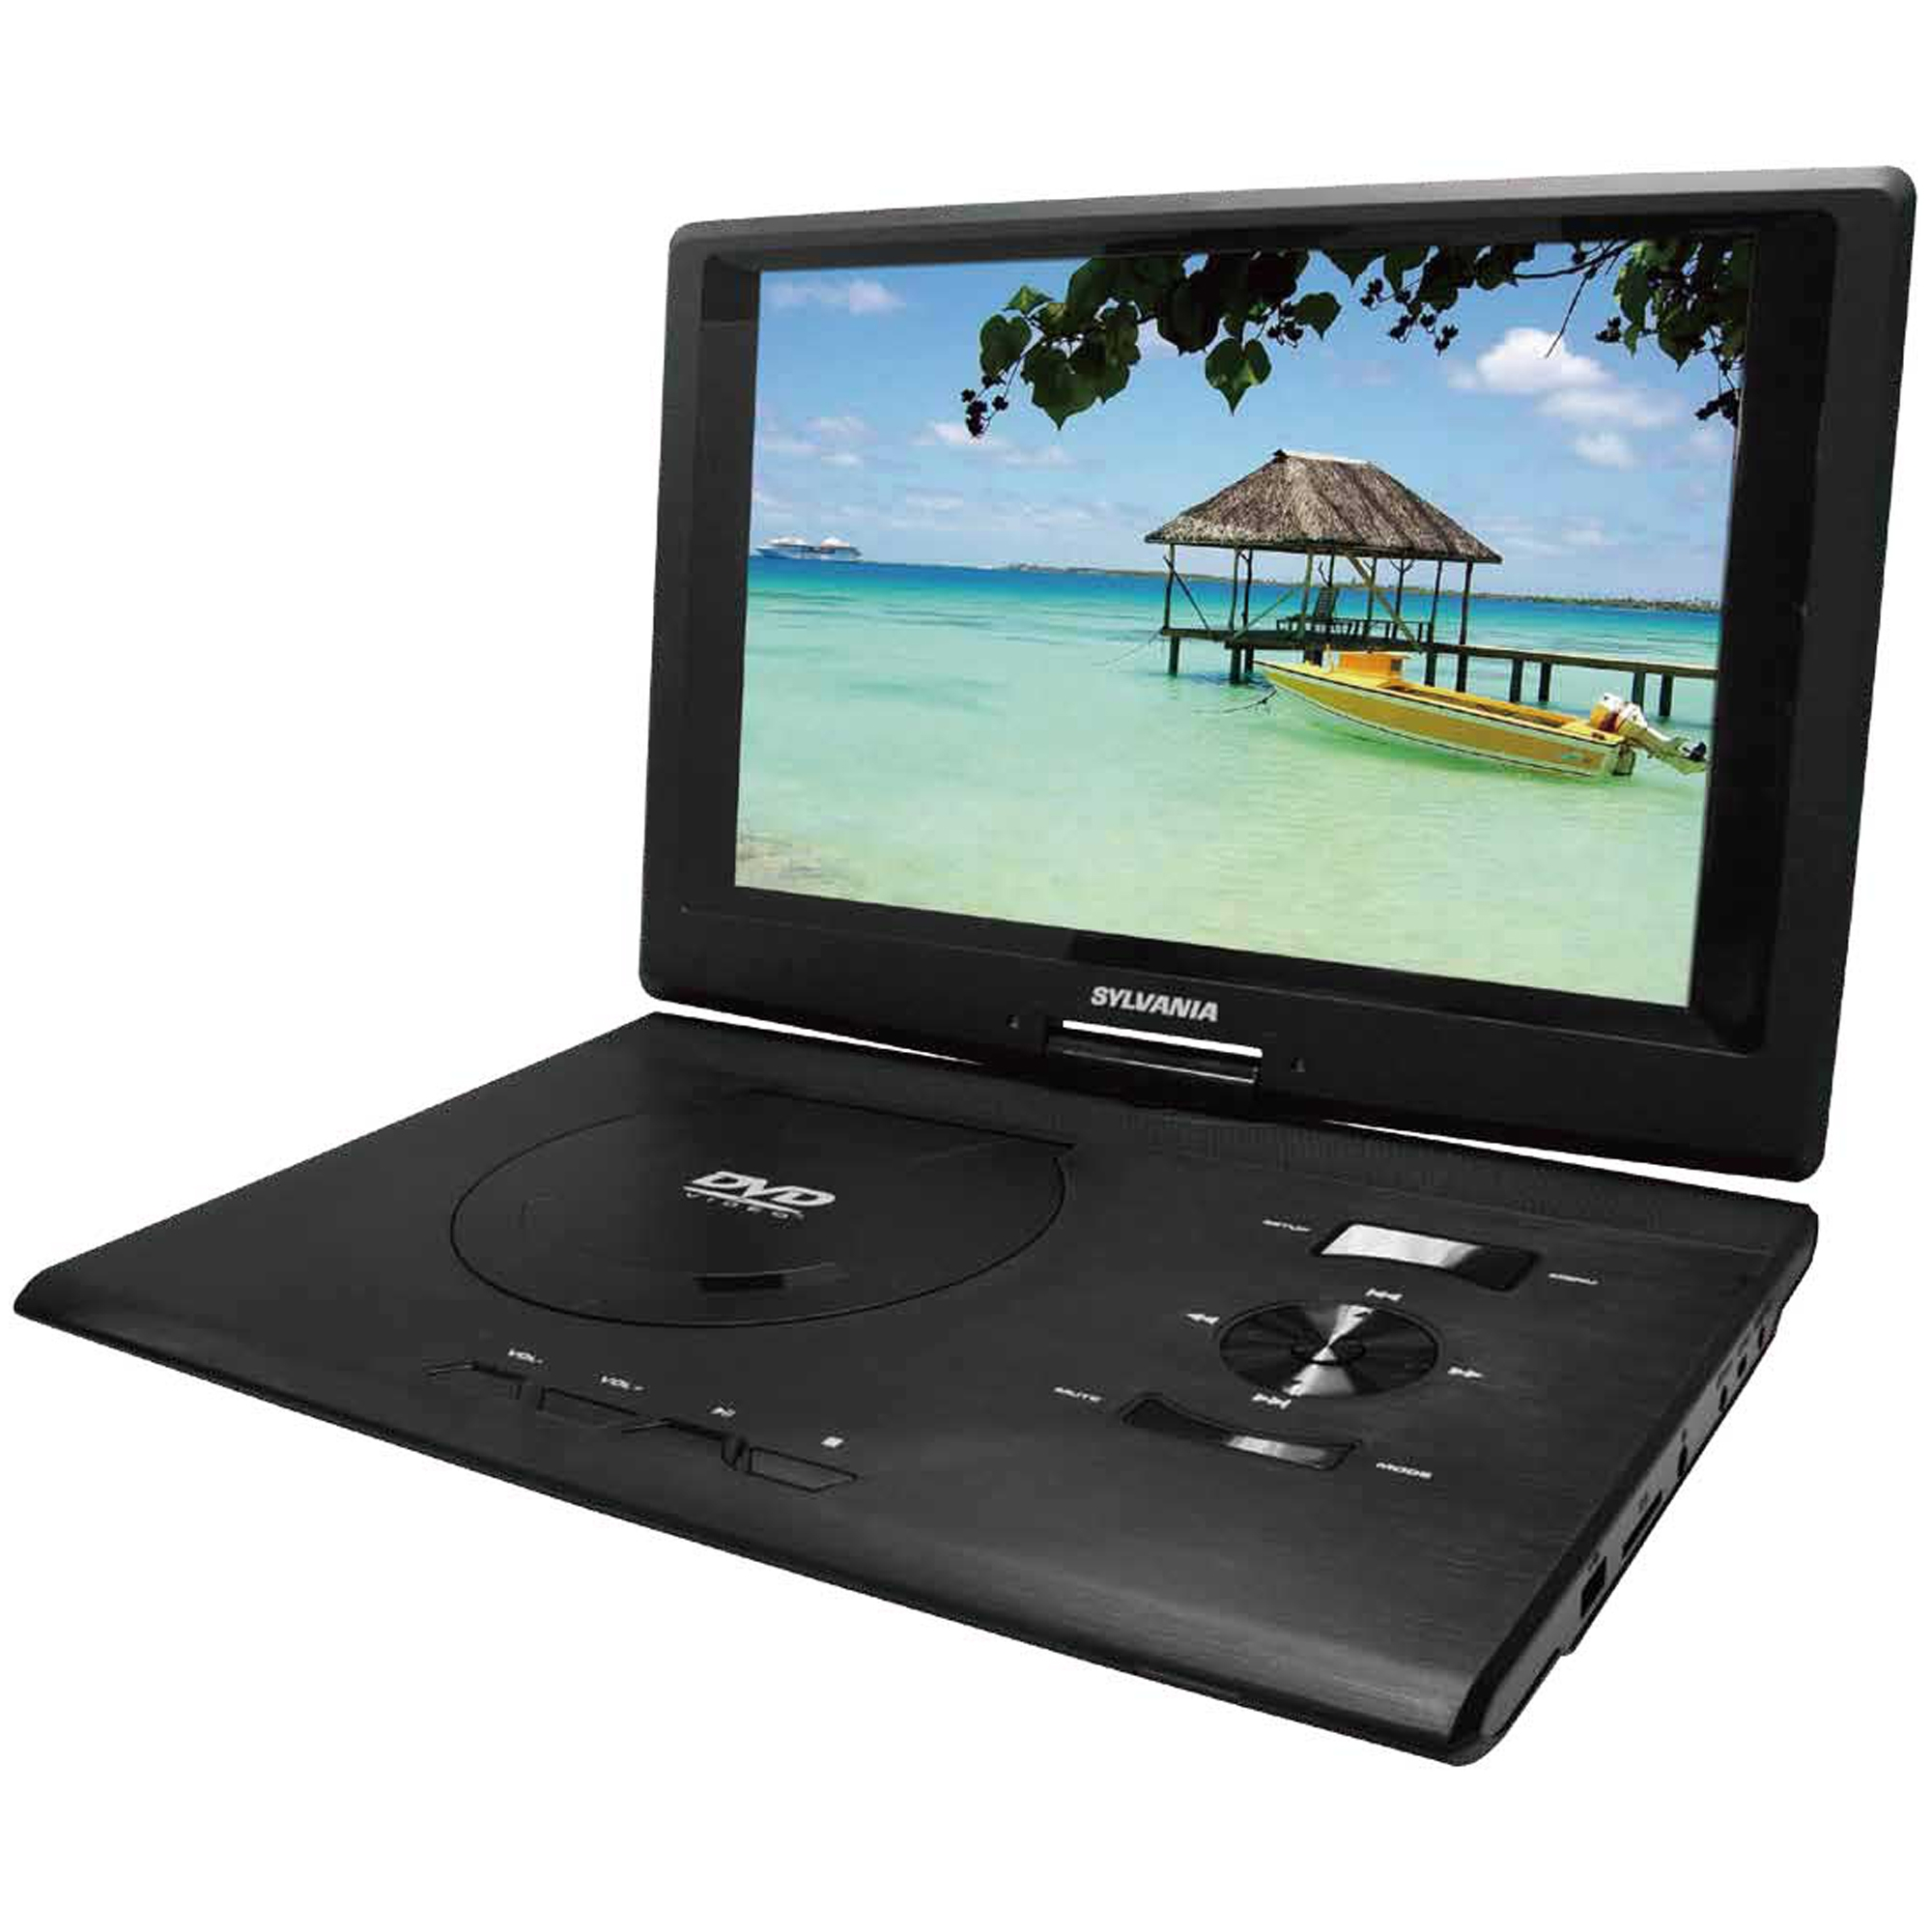 "Sylvania Sdvd1332 Portable Dvd Player - 13.3"" Display - 1280 X 800 - Black - Dvd-rw, Dvd+rw, Cd-rw - Jpeg - Dvd Video - 16:9 - Cd-da, Mp3 - 1 X Headphone Port[s] - Usb - Lithium Polymer - 2 (sdvd1332)"